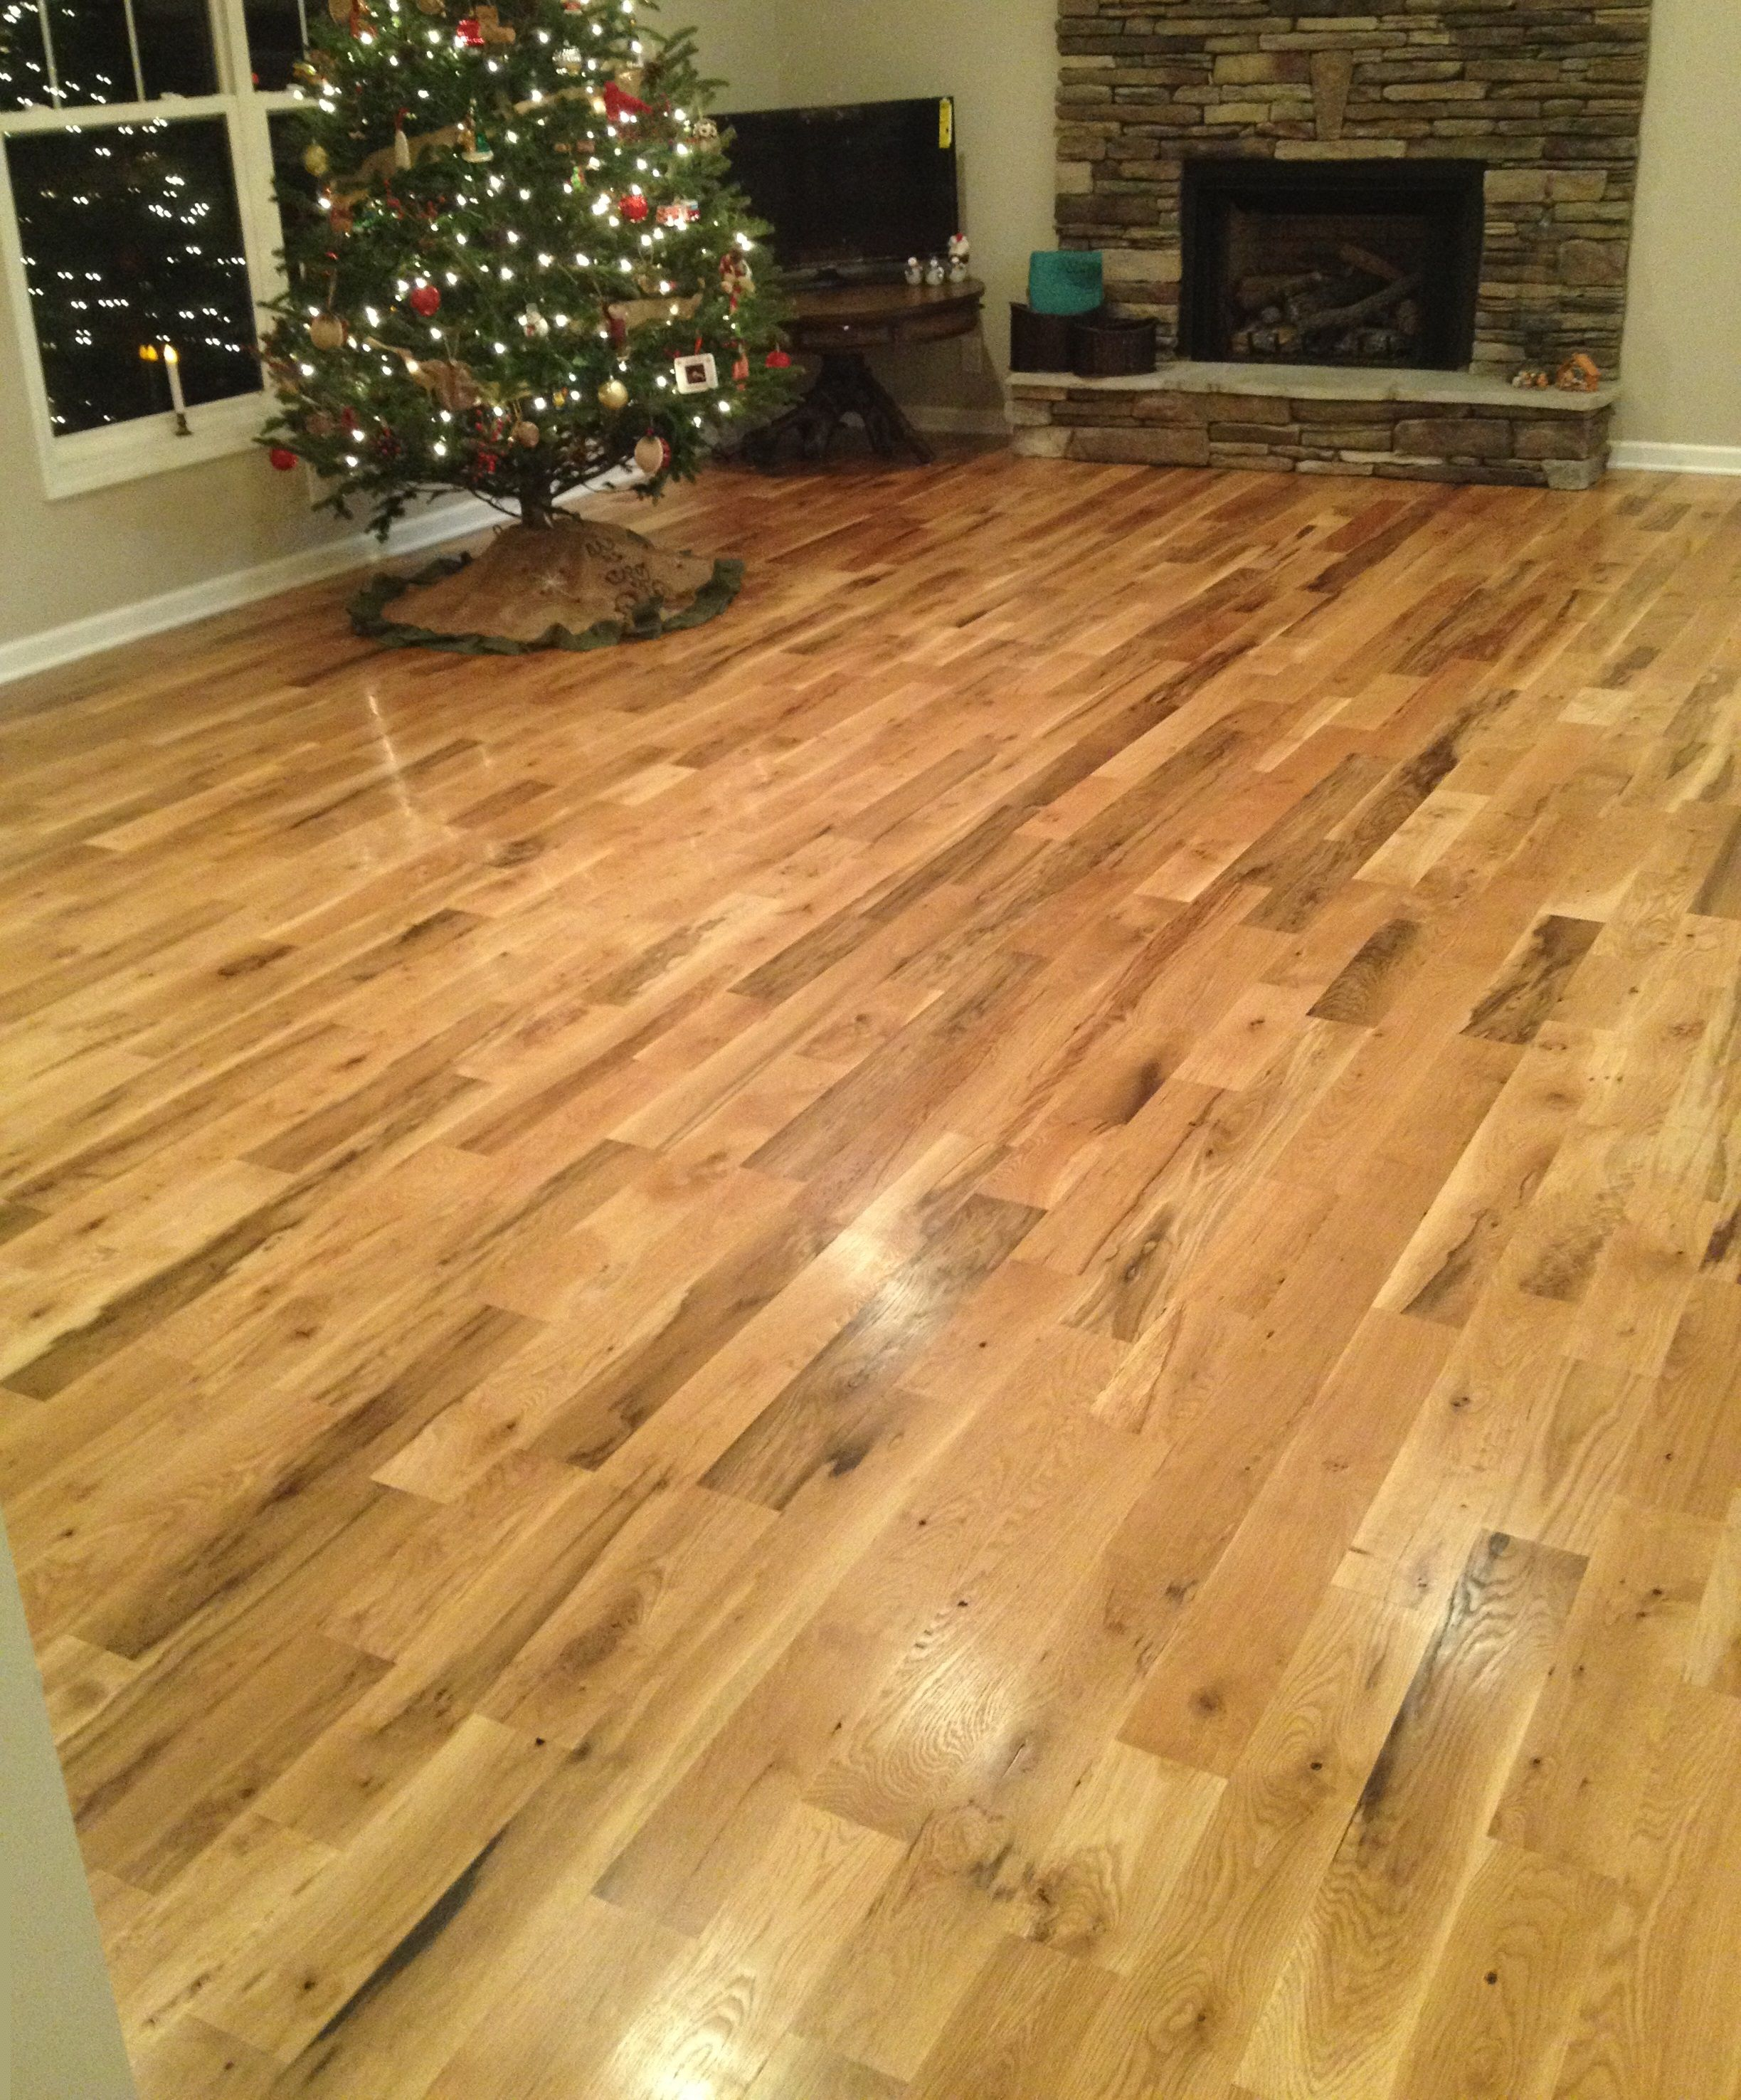 4 1 4 2 Common White Oak Hardwood Floors From Munday Hardwoods White Oak Hardwood Floors Flooring Oak Hardwood Flooring